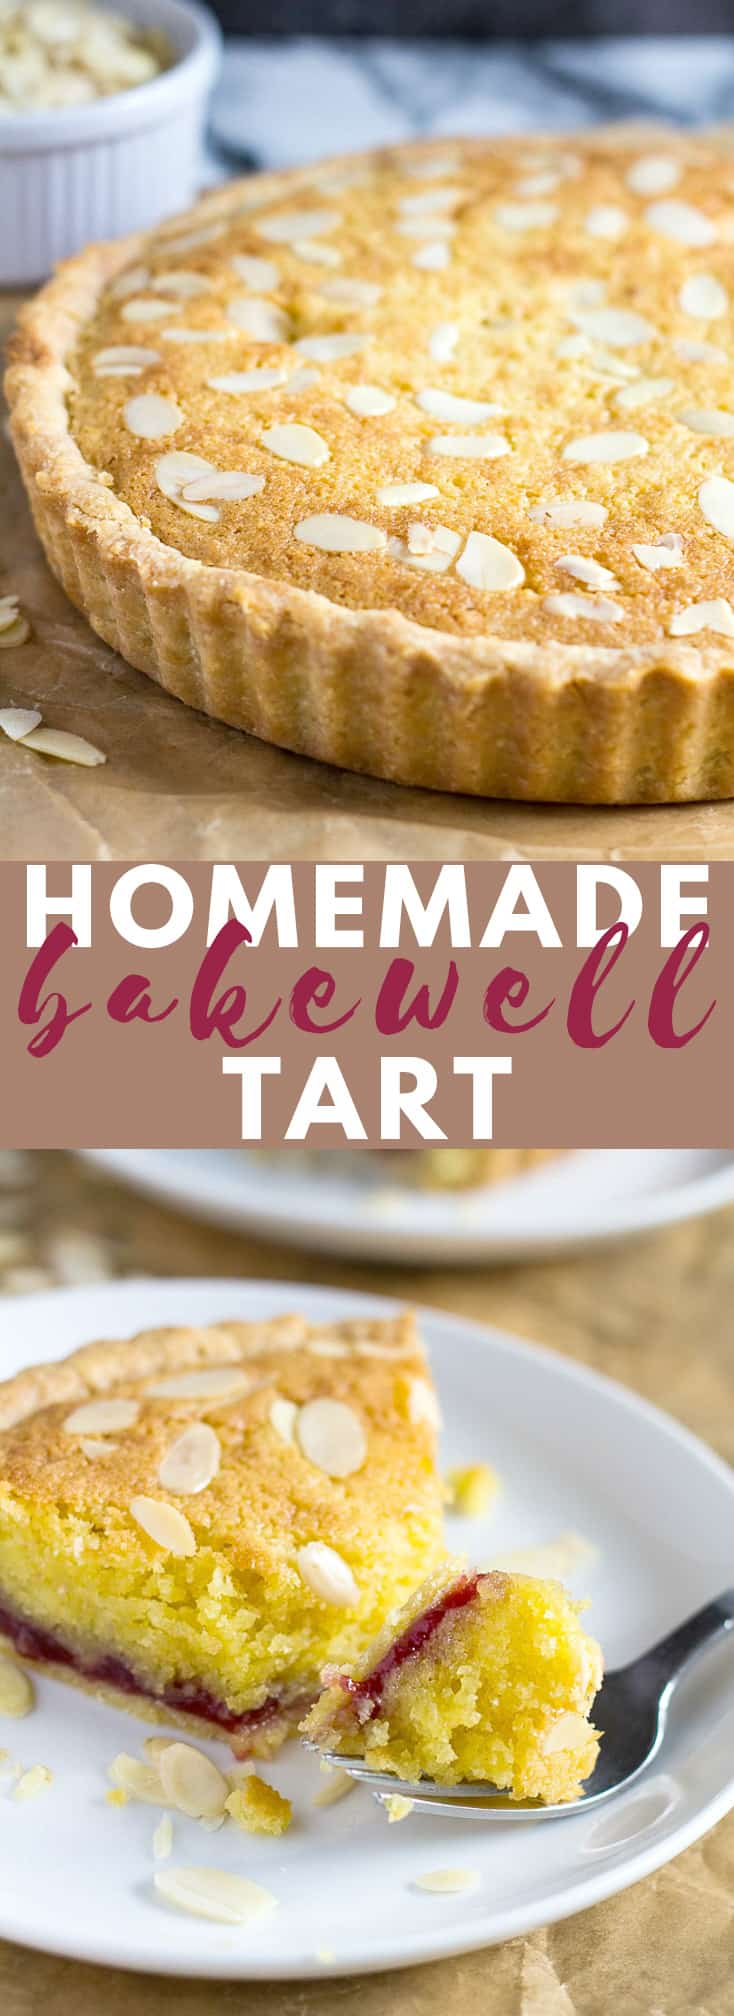 Bakewell Tart- A sweet shortcrust pastry filled with raspberry jam, almond flavoured sponge, and topped with flaked almonds! #bakewelltart #tartrecipes #cherrybakewell #recipe